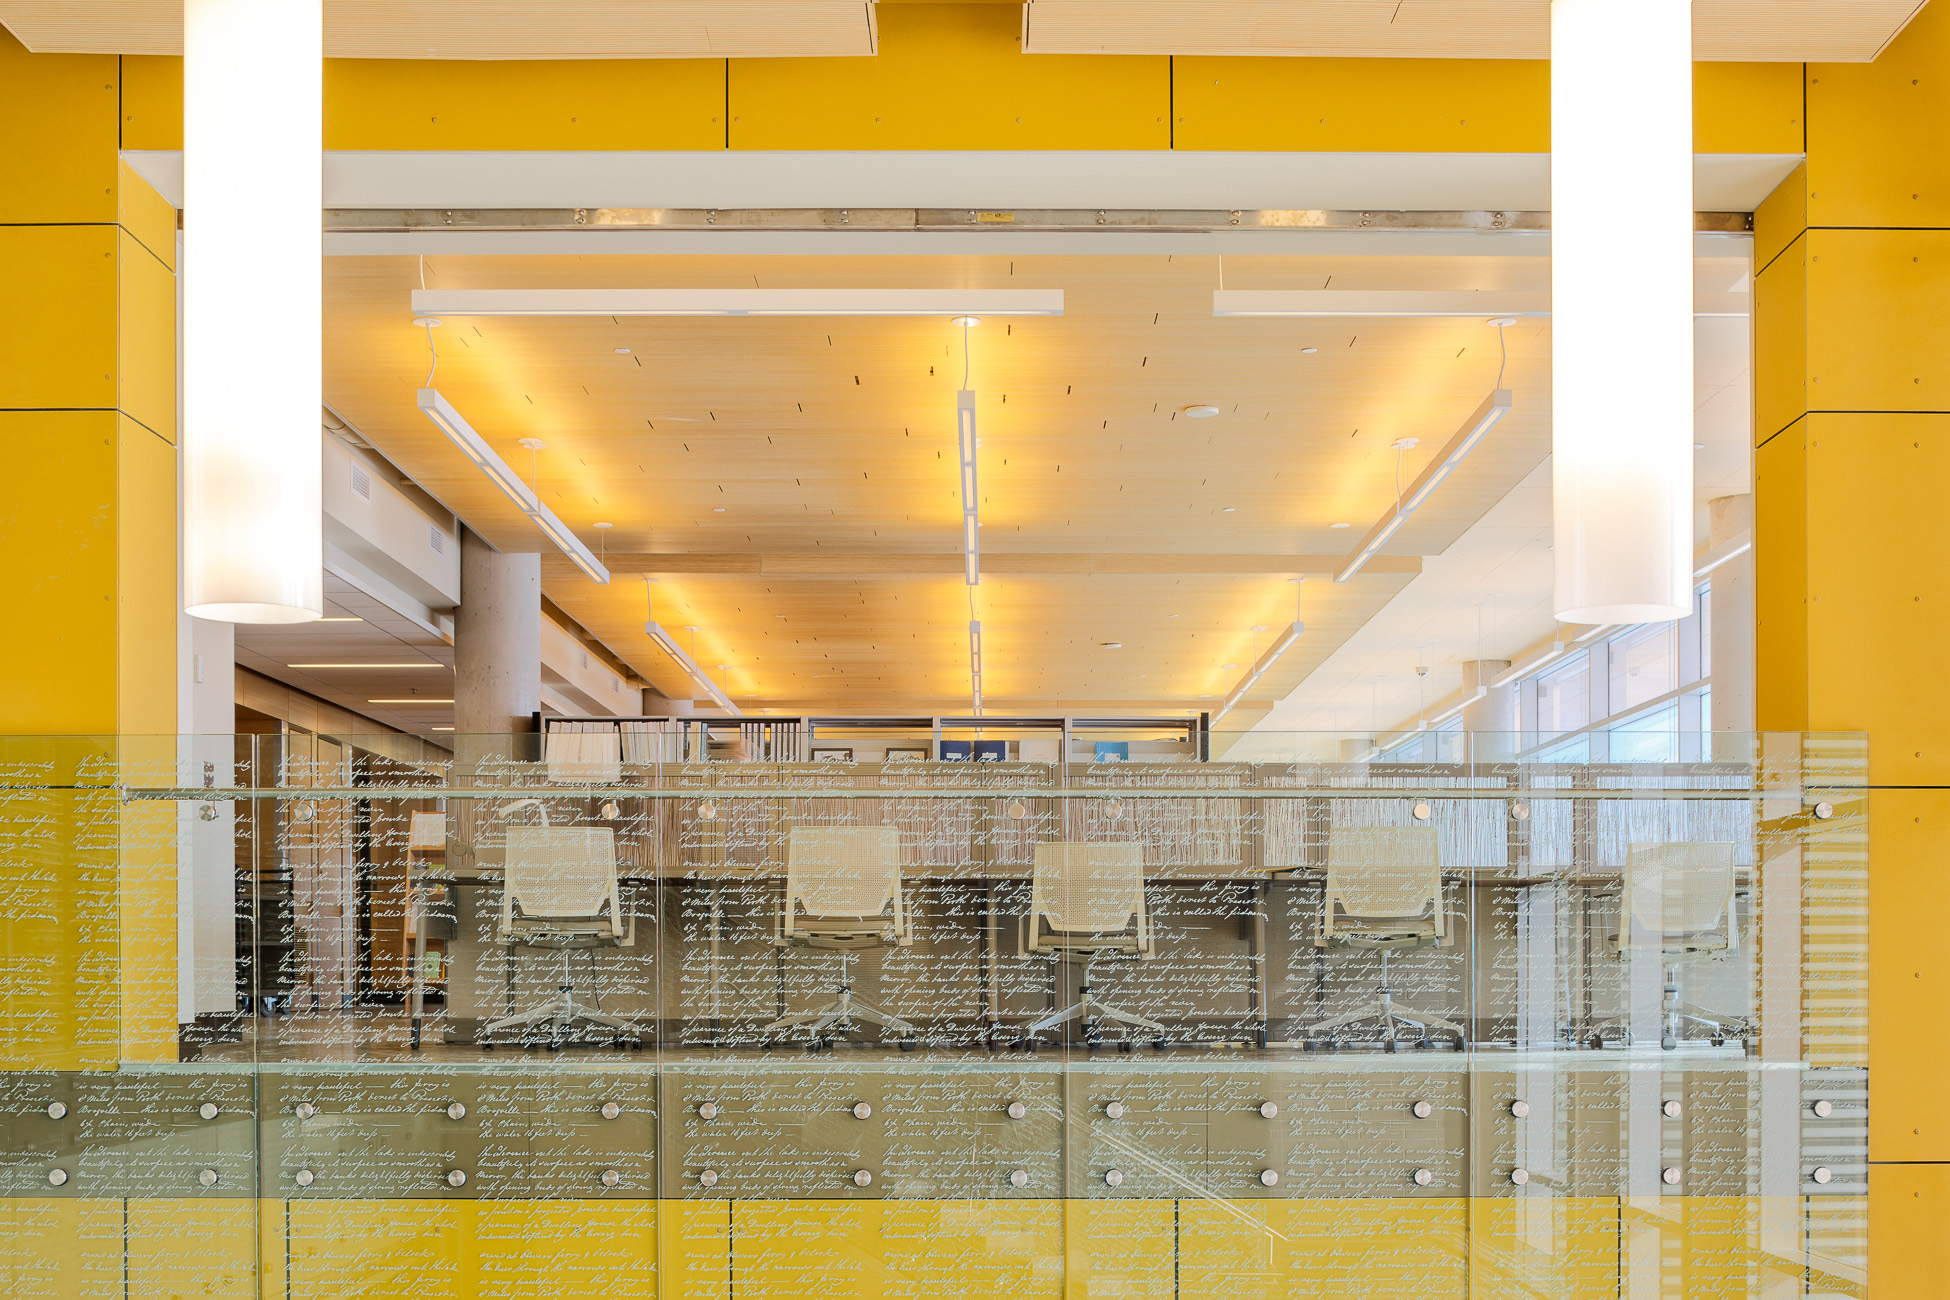 51-doublespace architecture photography james bartleman library-Edit.jpg